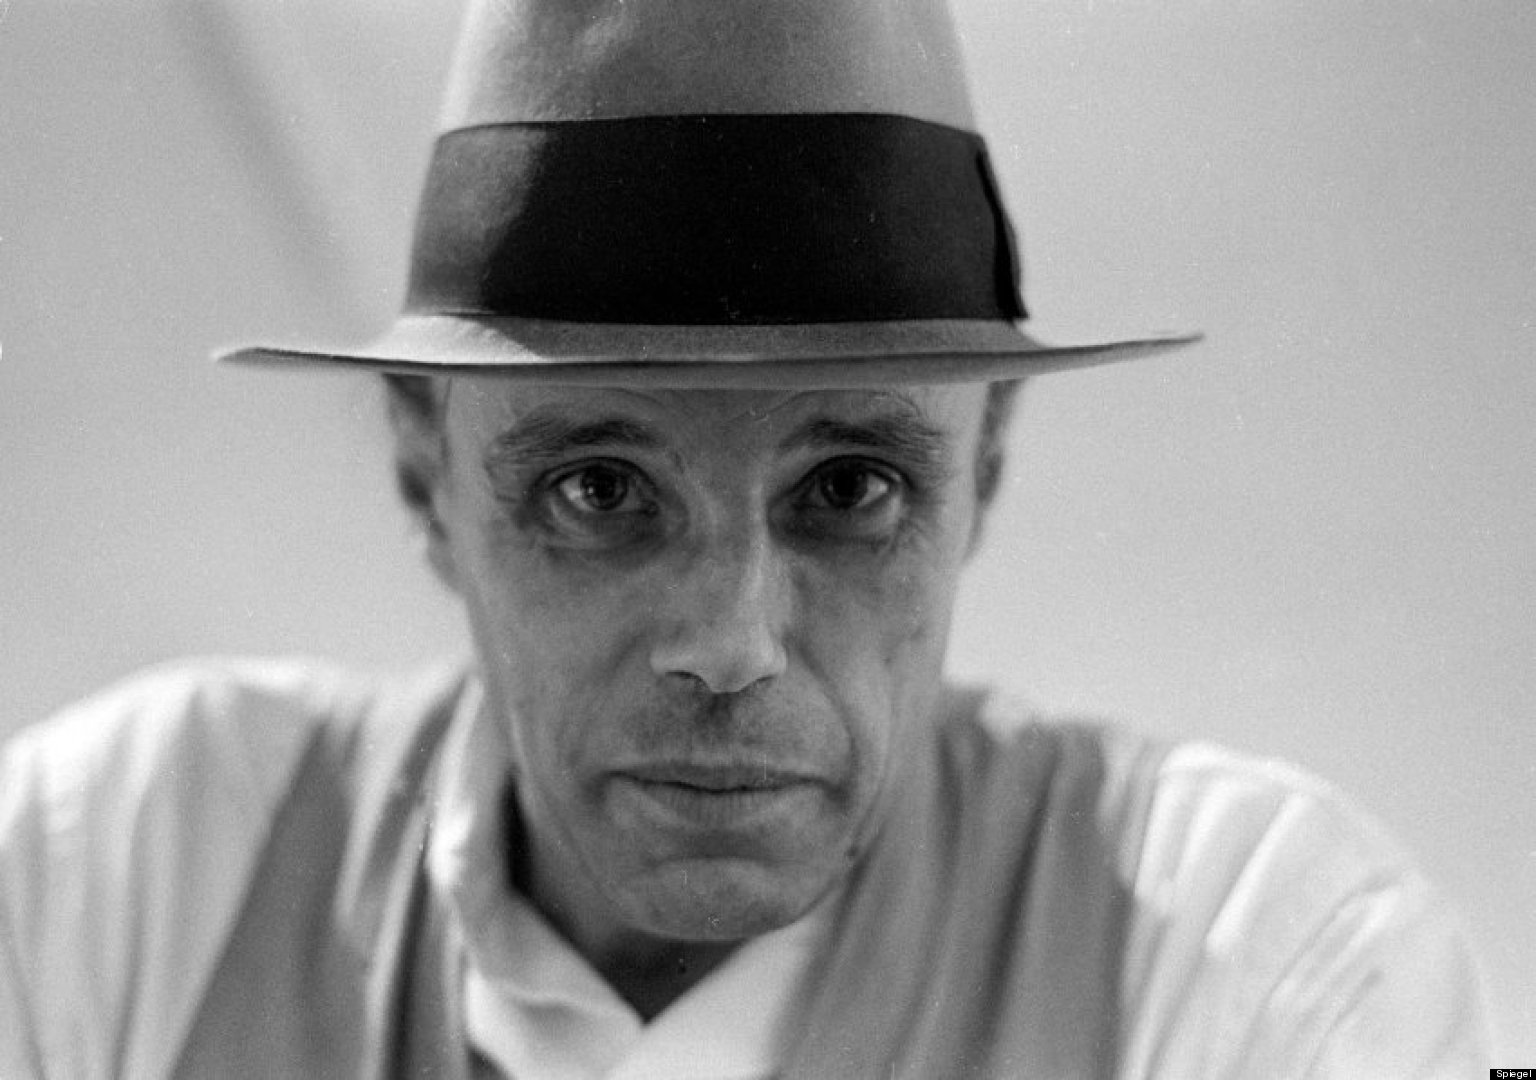 New joseph beuys biography discloses ties to nazis the huffington